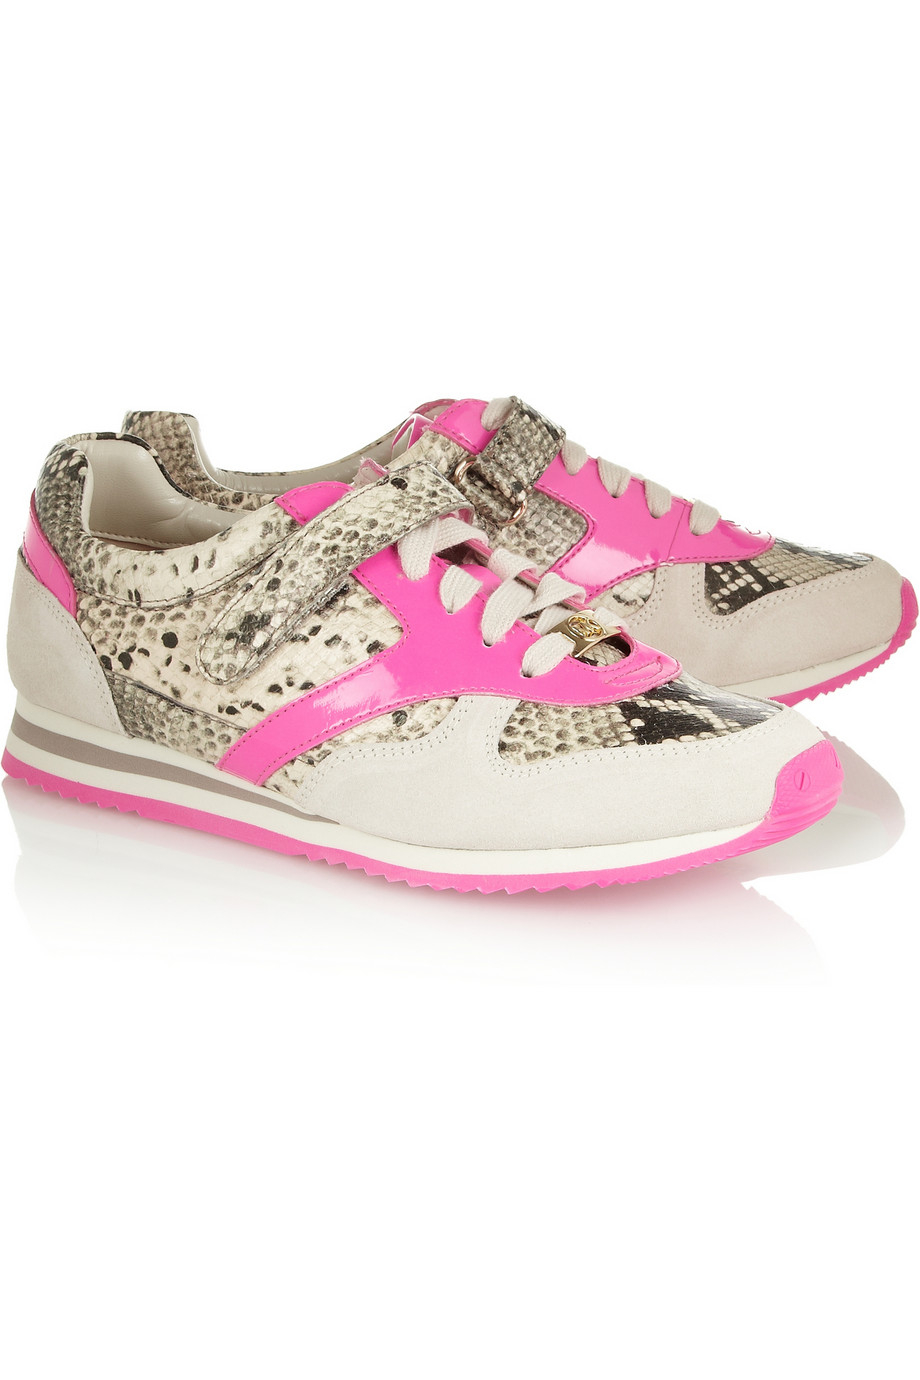 MICHAEL Michael Kors Alexandra Snakeeffect Leather and Suede Sneakers in Snake Print (Pink)